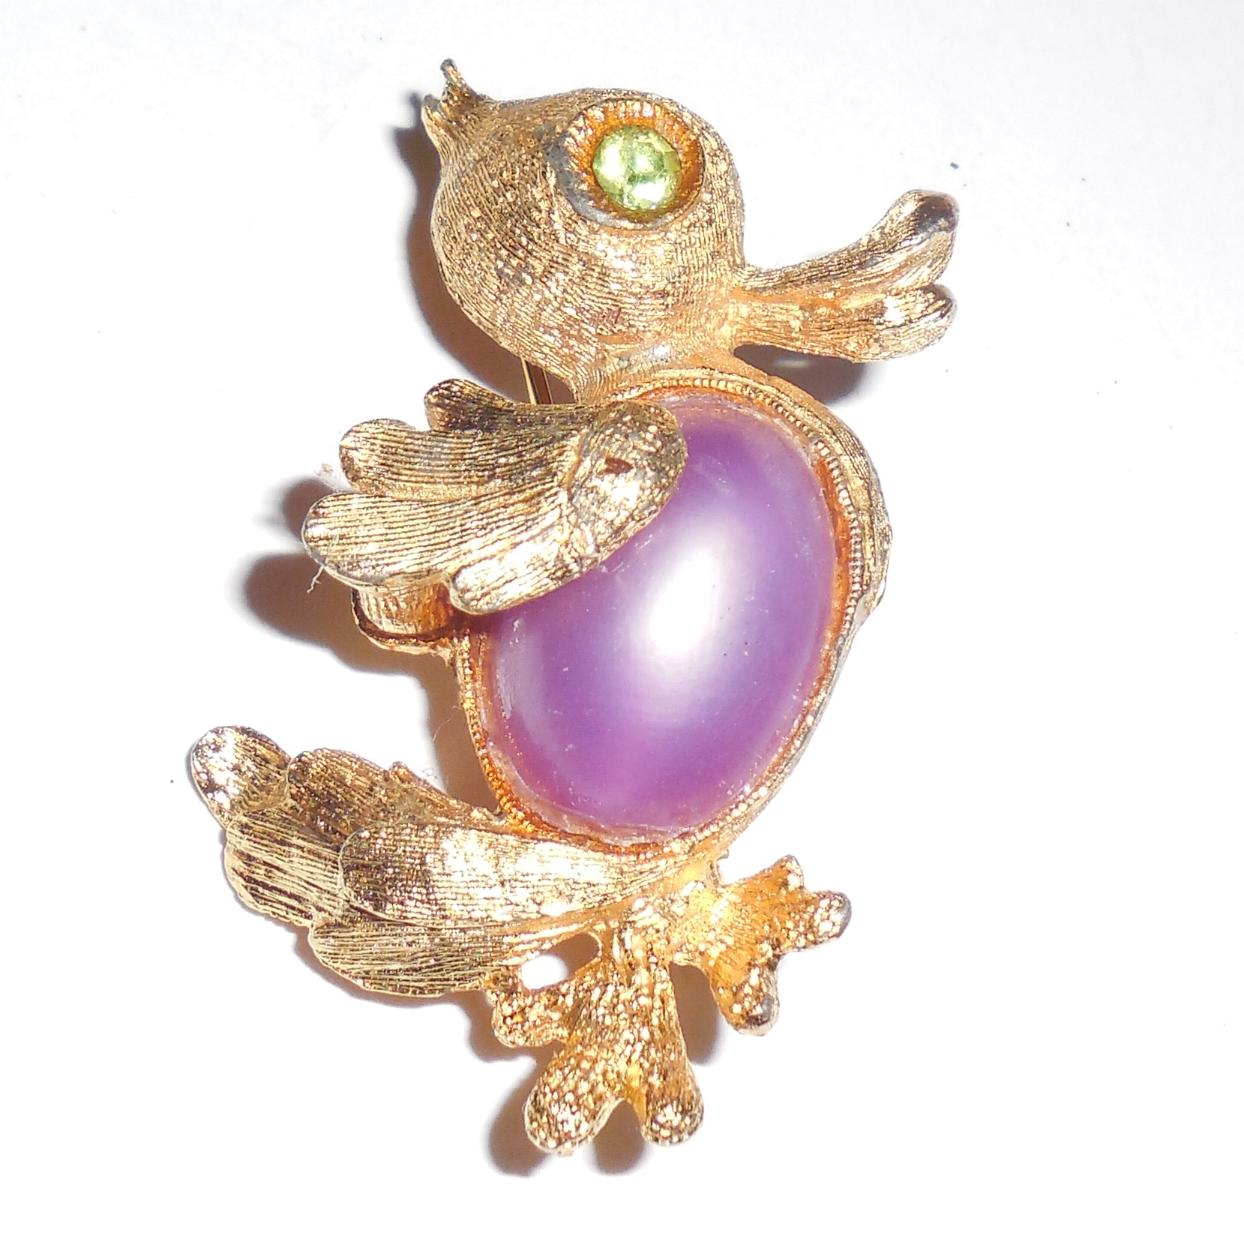 Vintage DODDS 11 W 30 ST INC Jelly Belly Duck Pin